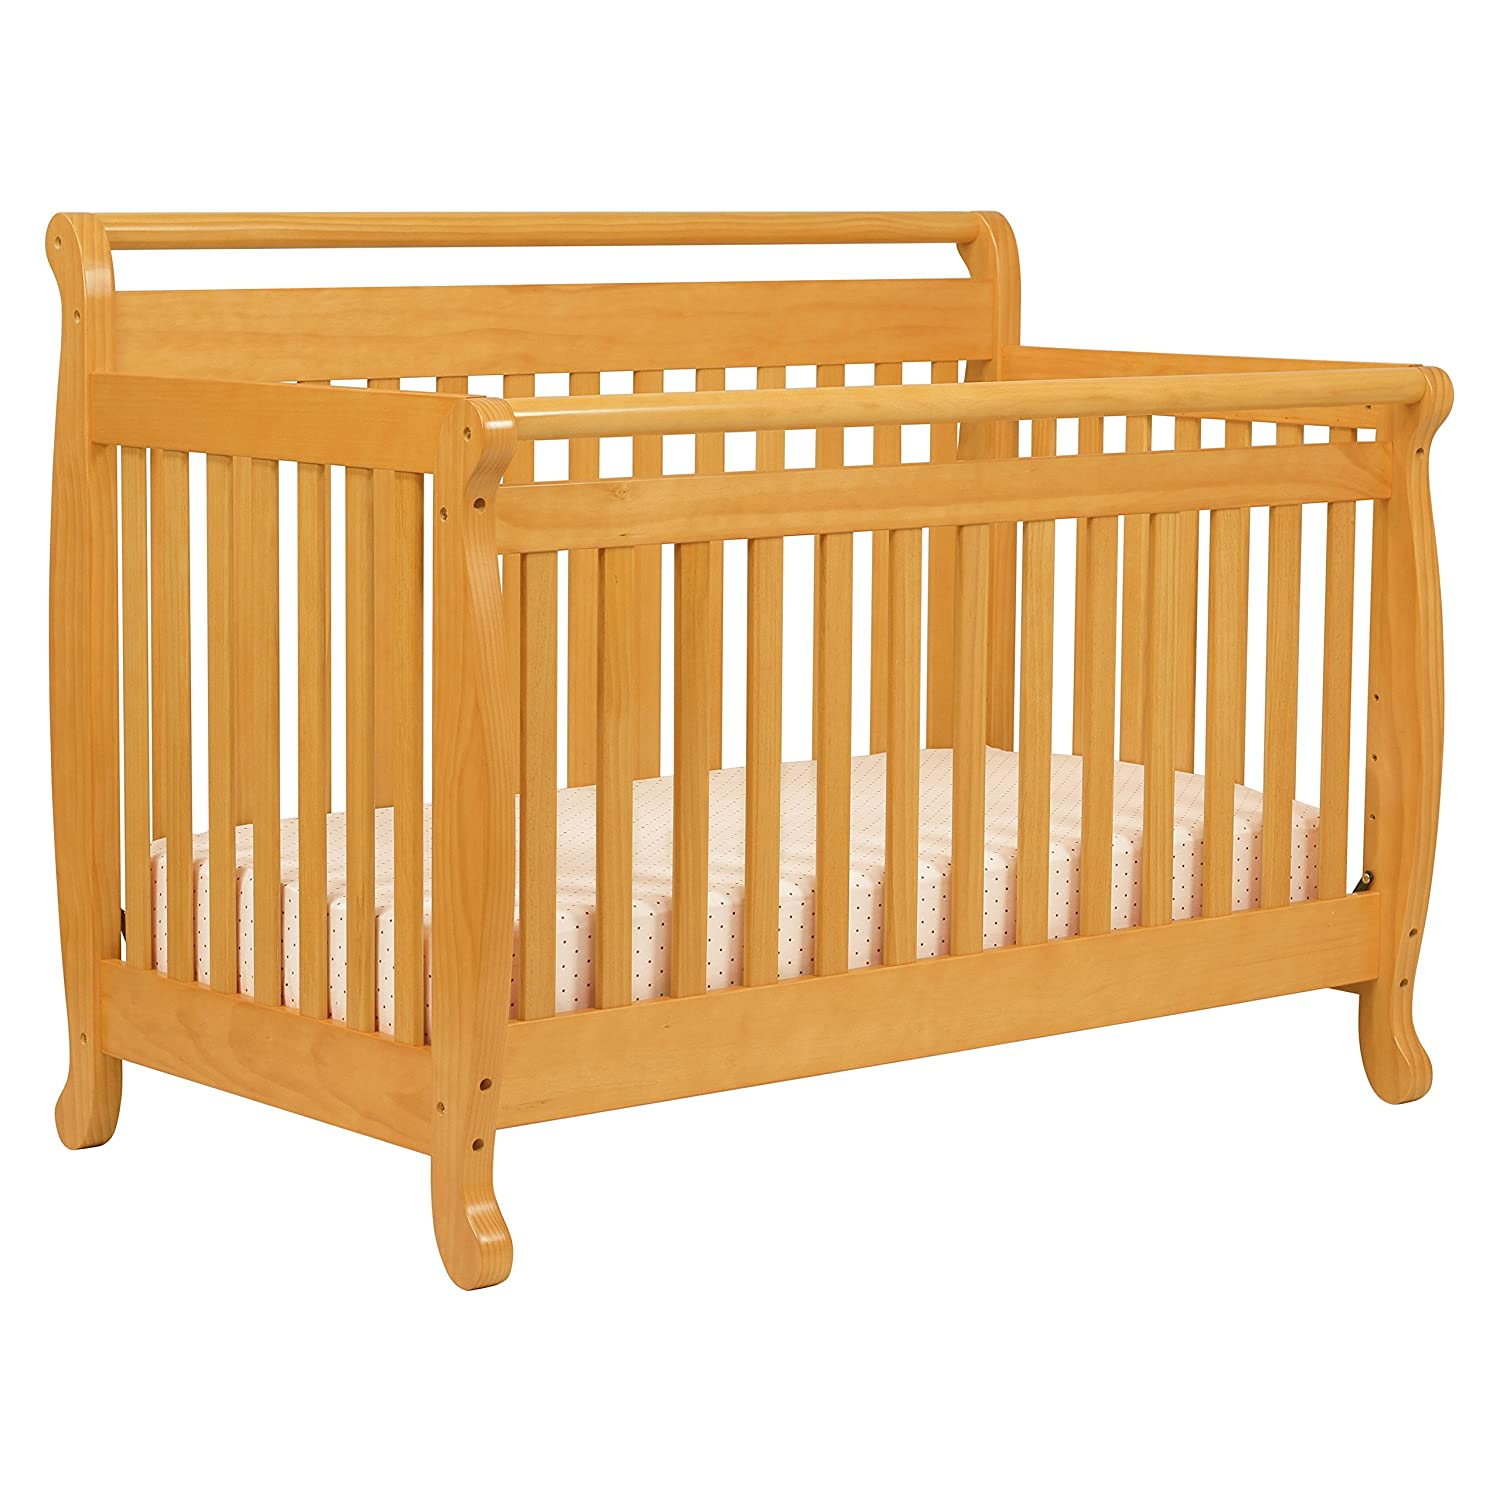 65 davinci kalani 4 in 1 convertible baby crib honey oak co